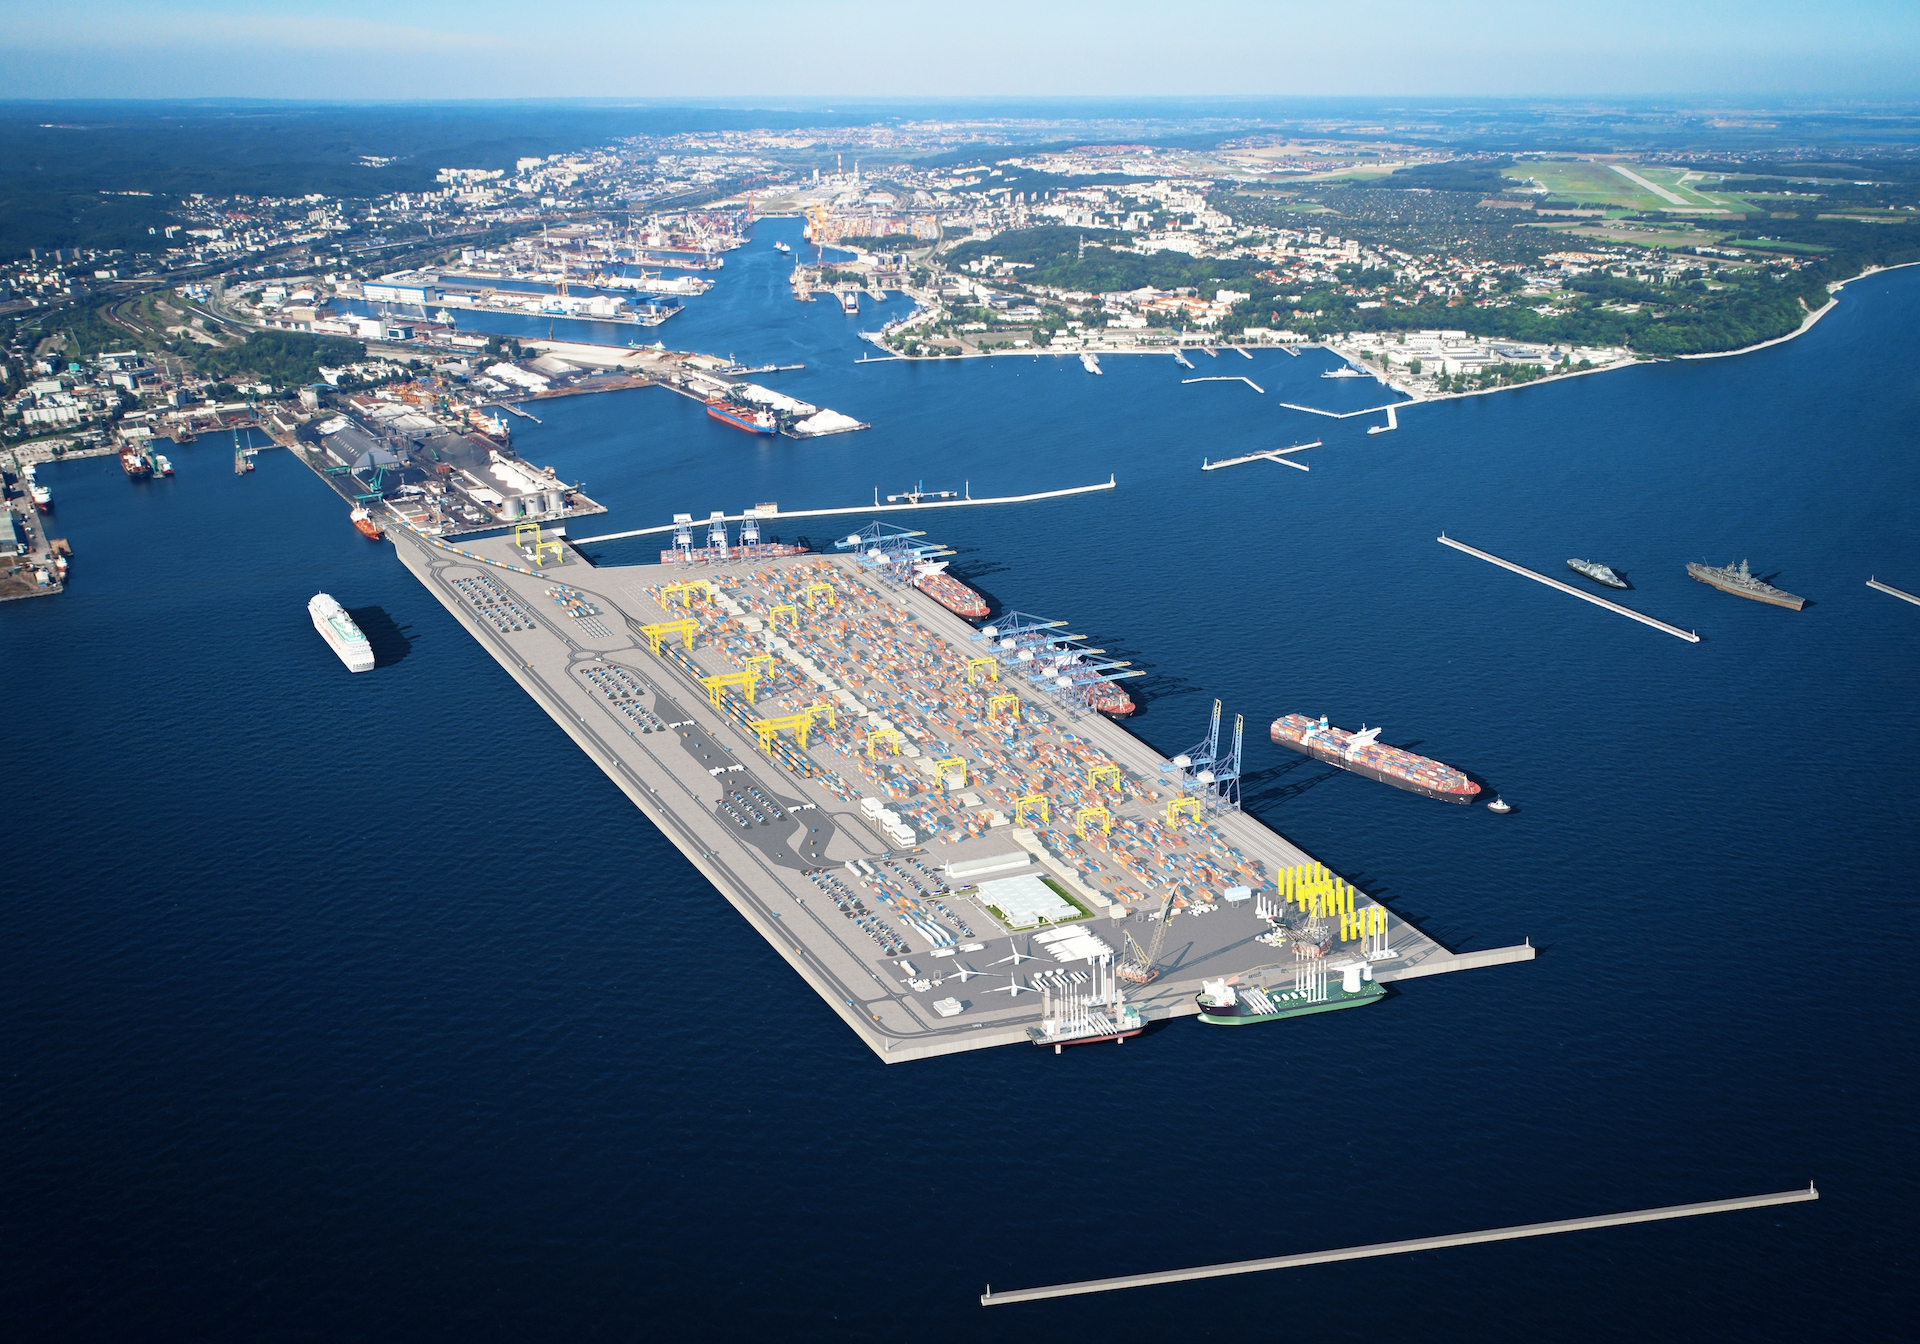 The whole world eyes set on the Port of Gdynia – offers opened for a private partner for the Outer Port investment